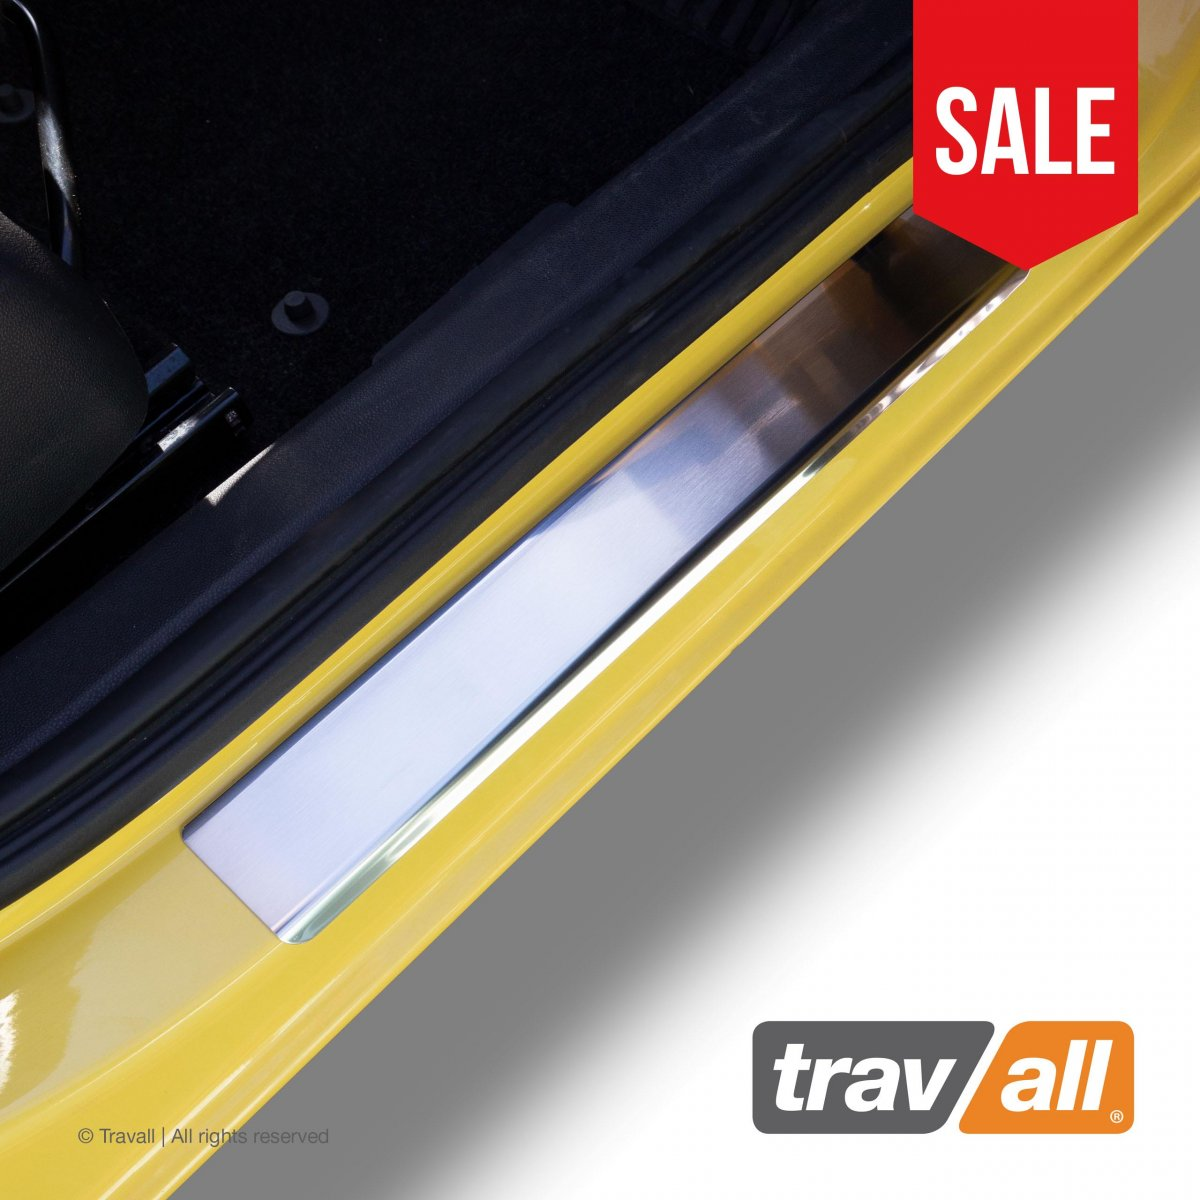 Travall® Sillguards for Opel/Vauxhall Corsa 5 Door Hatchback (2006-2019)